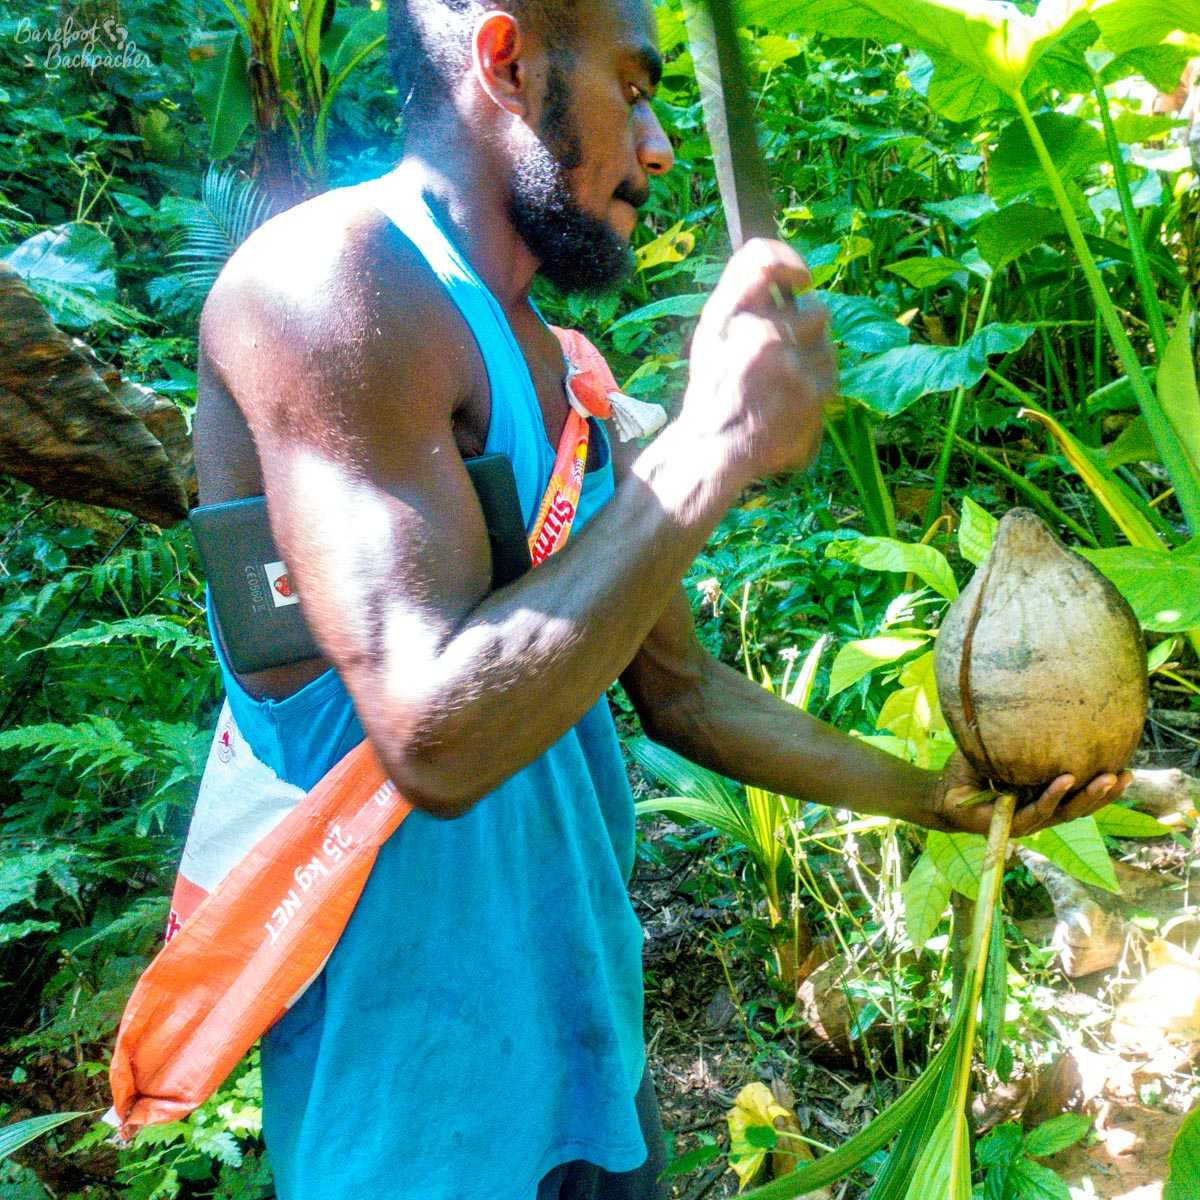 My guide cutting a coconut with a machete.